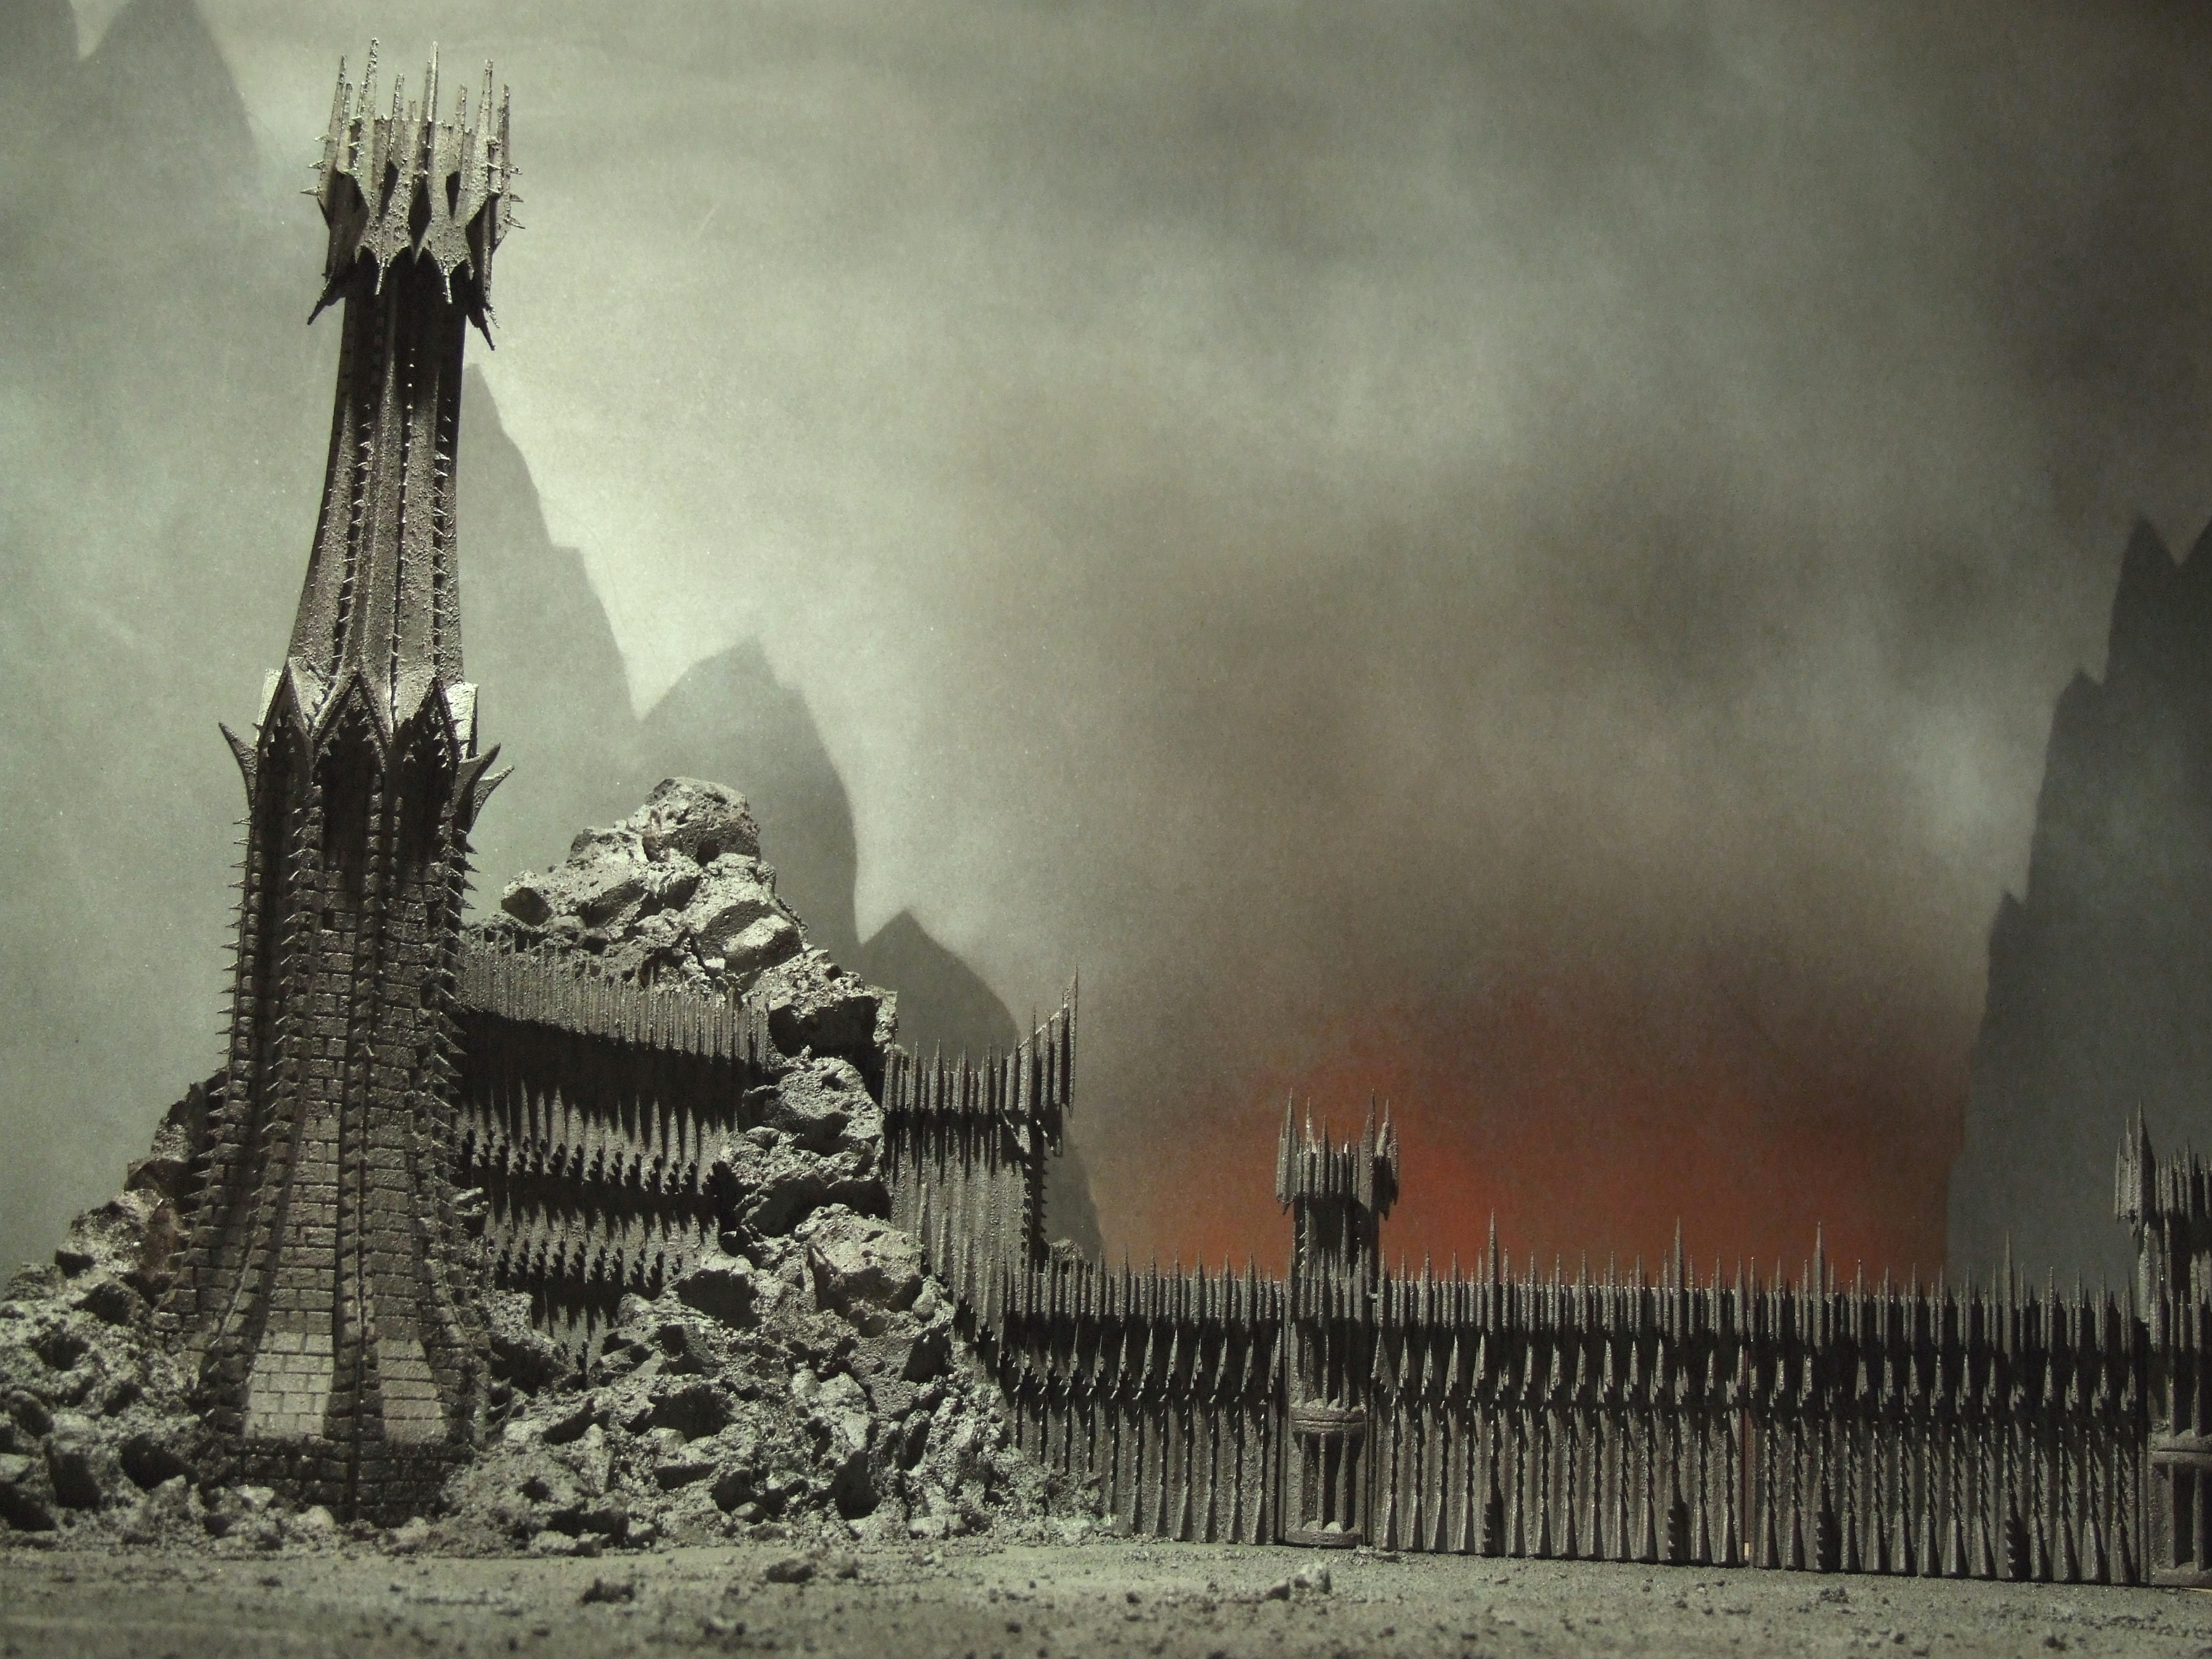 Lord Of The Rings Scenery Builder